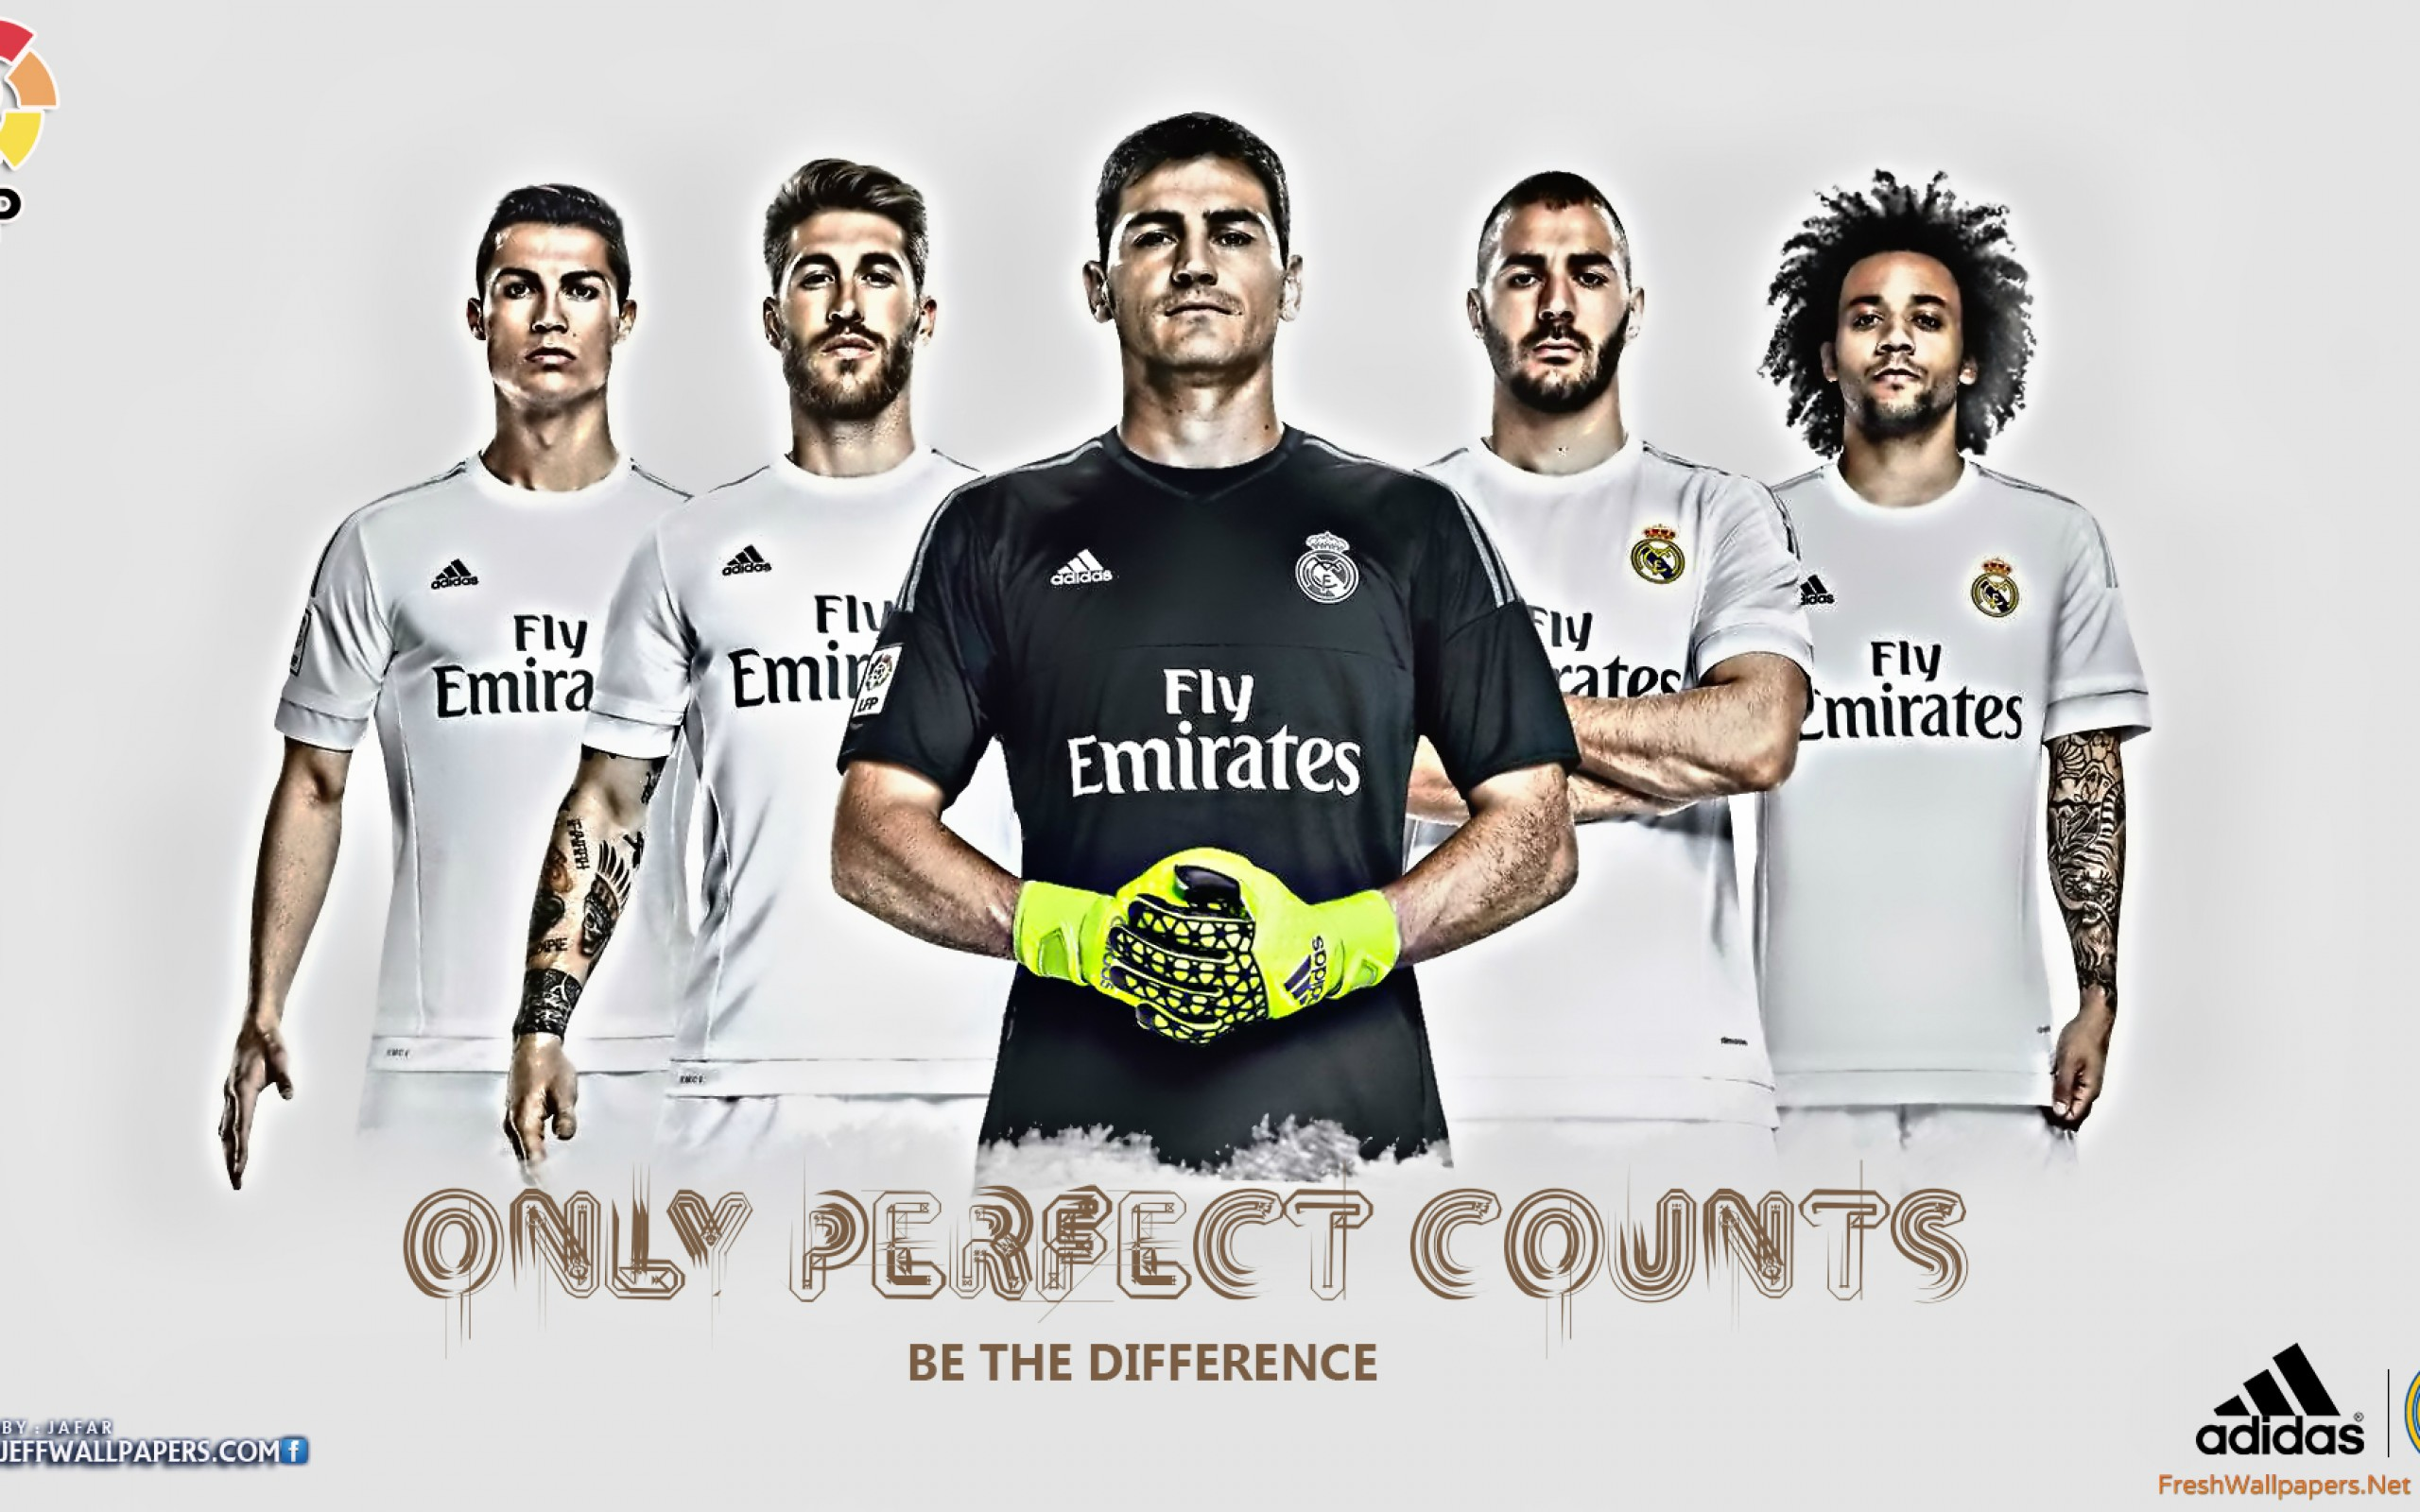 Real Madrid CF 2015 2016 HD wallpapers Freshwallpapers 2560x1600